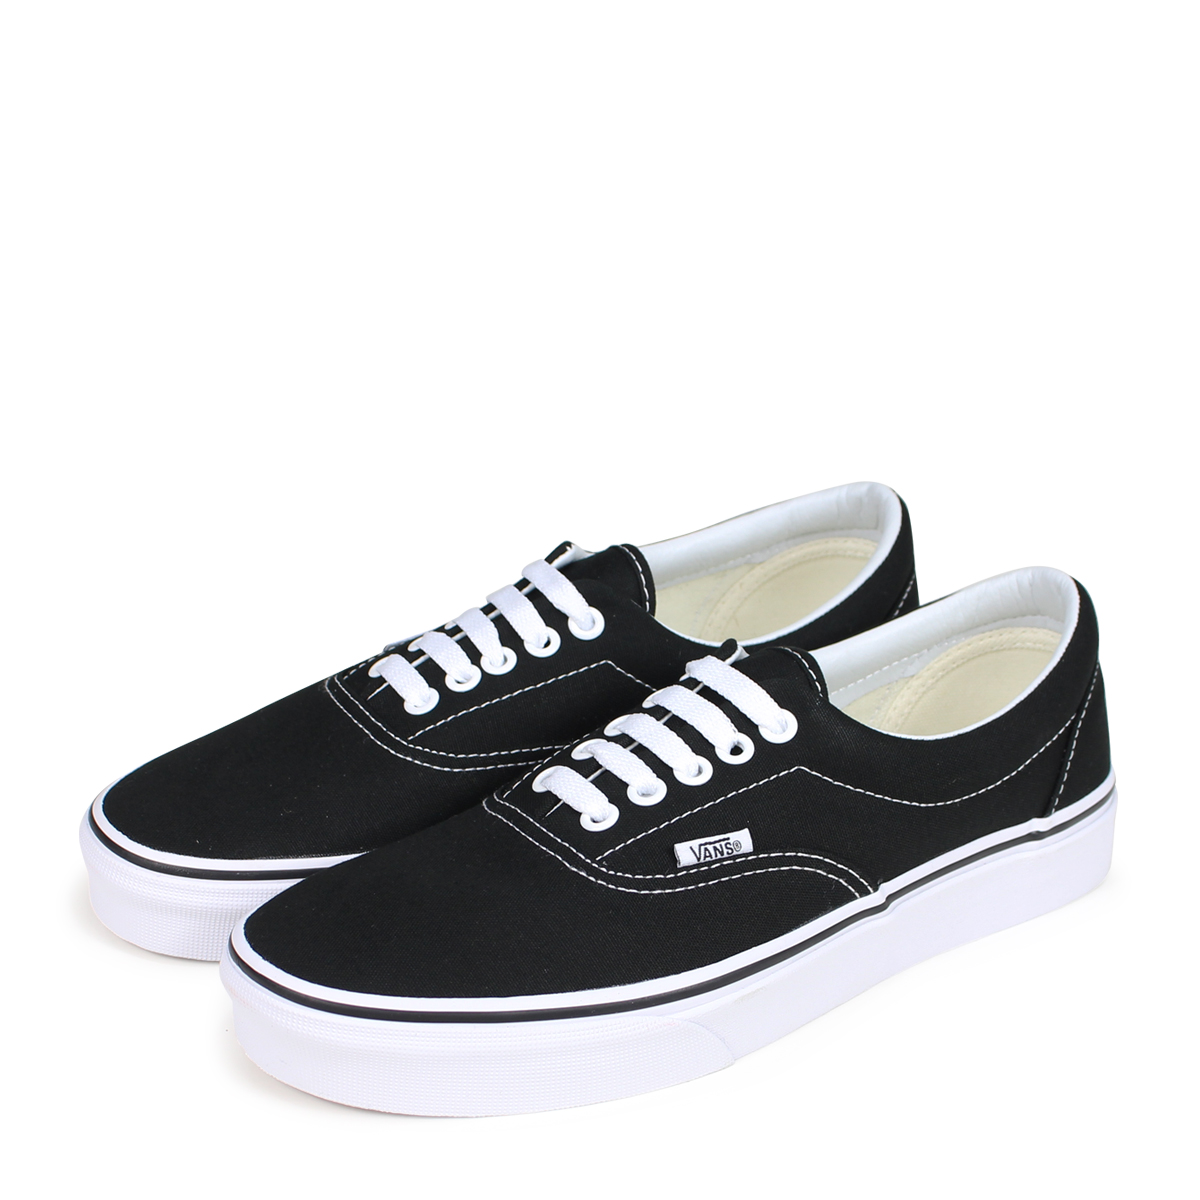 d30528d4a9 VANS ERA vans sneakers gills men gap Dis station wagons VN000EWZBLK black  black  the load planned additional arrival in reservation product 5 10  containing  ...